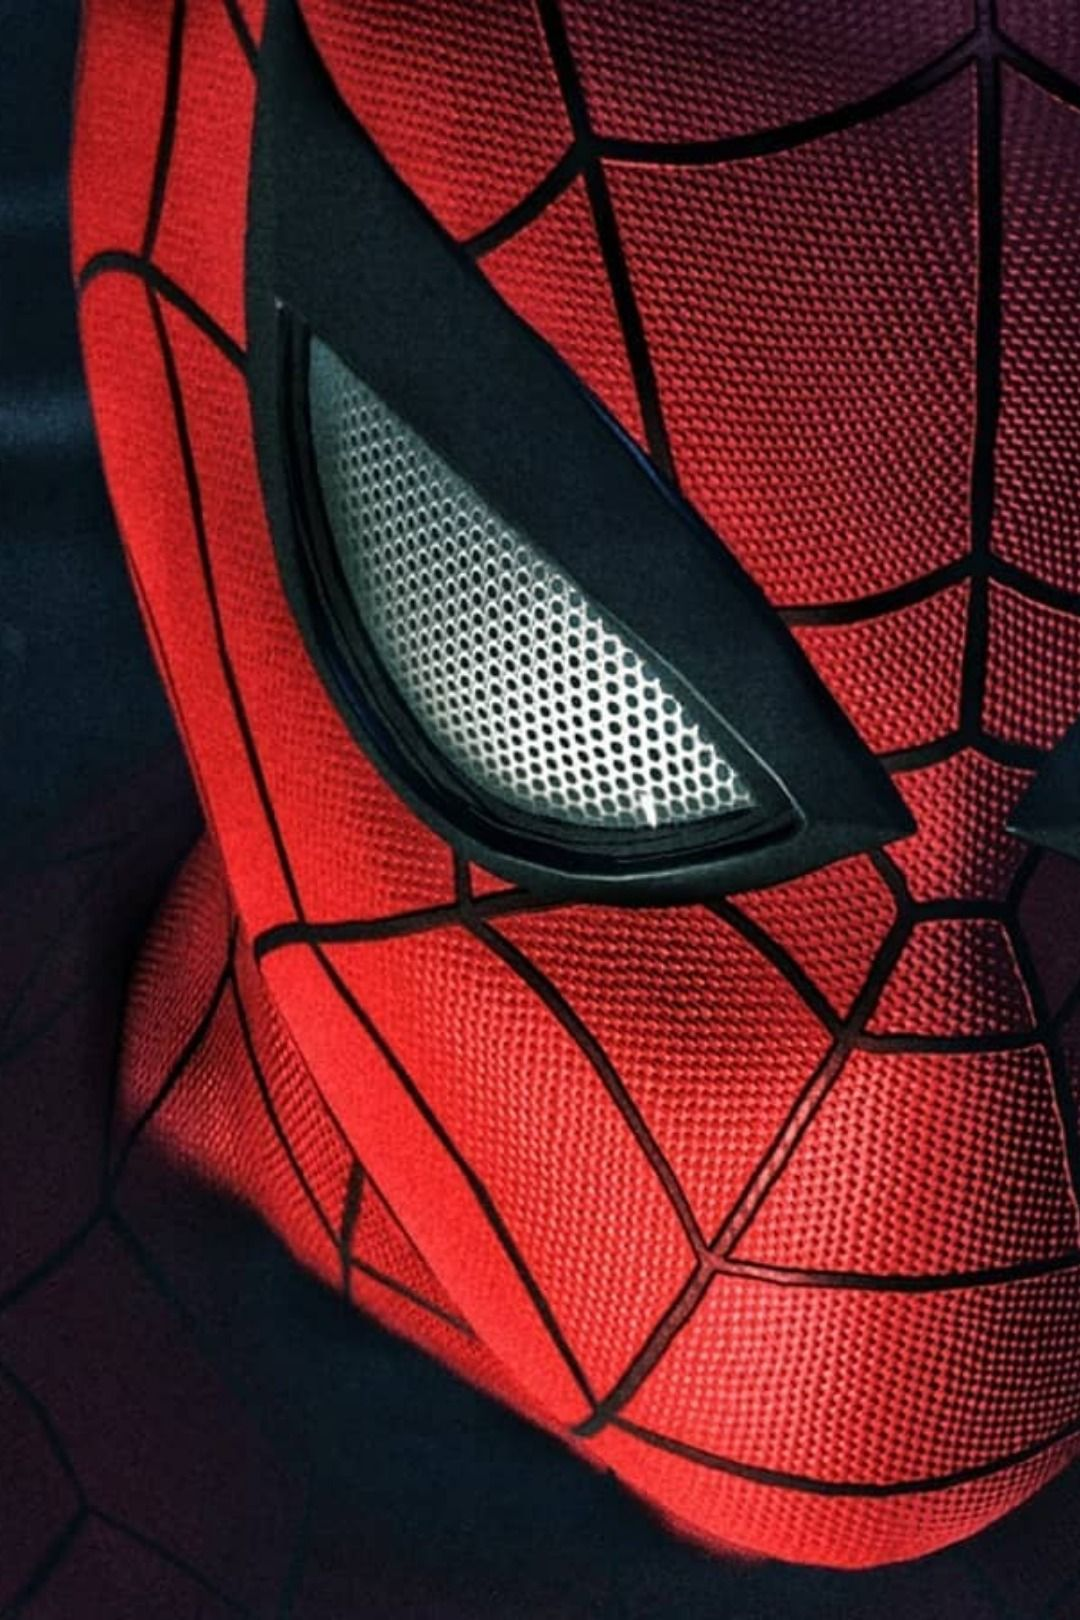 The Best Spiderman Wallpaper For Your Smartphone Taken From In Game Photo Spiderman Marvel Spiderman Amazing Spiderman